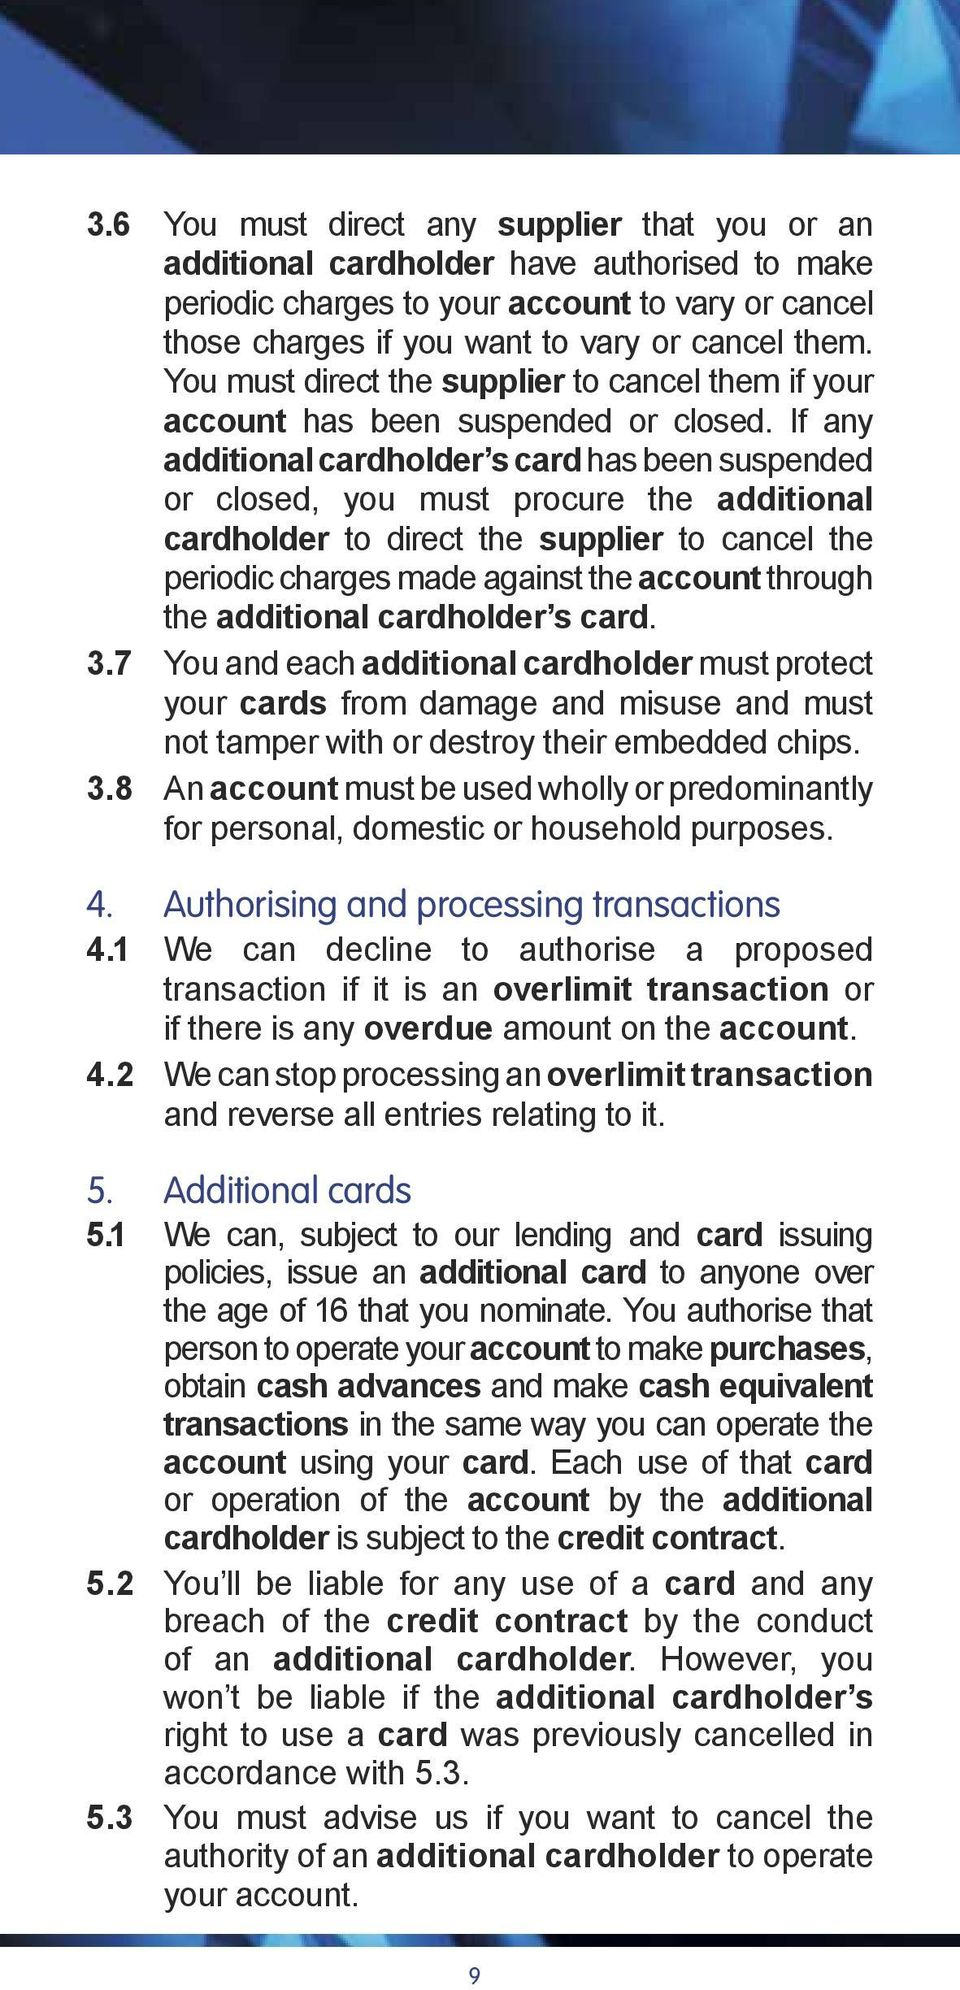 If any additional cardholder s card has been suspended or closed, you must procure the additional cardholder to direct the supplier to cancel the periodic charges made against the account through the